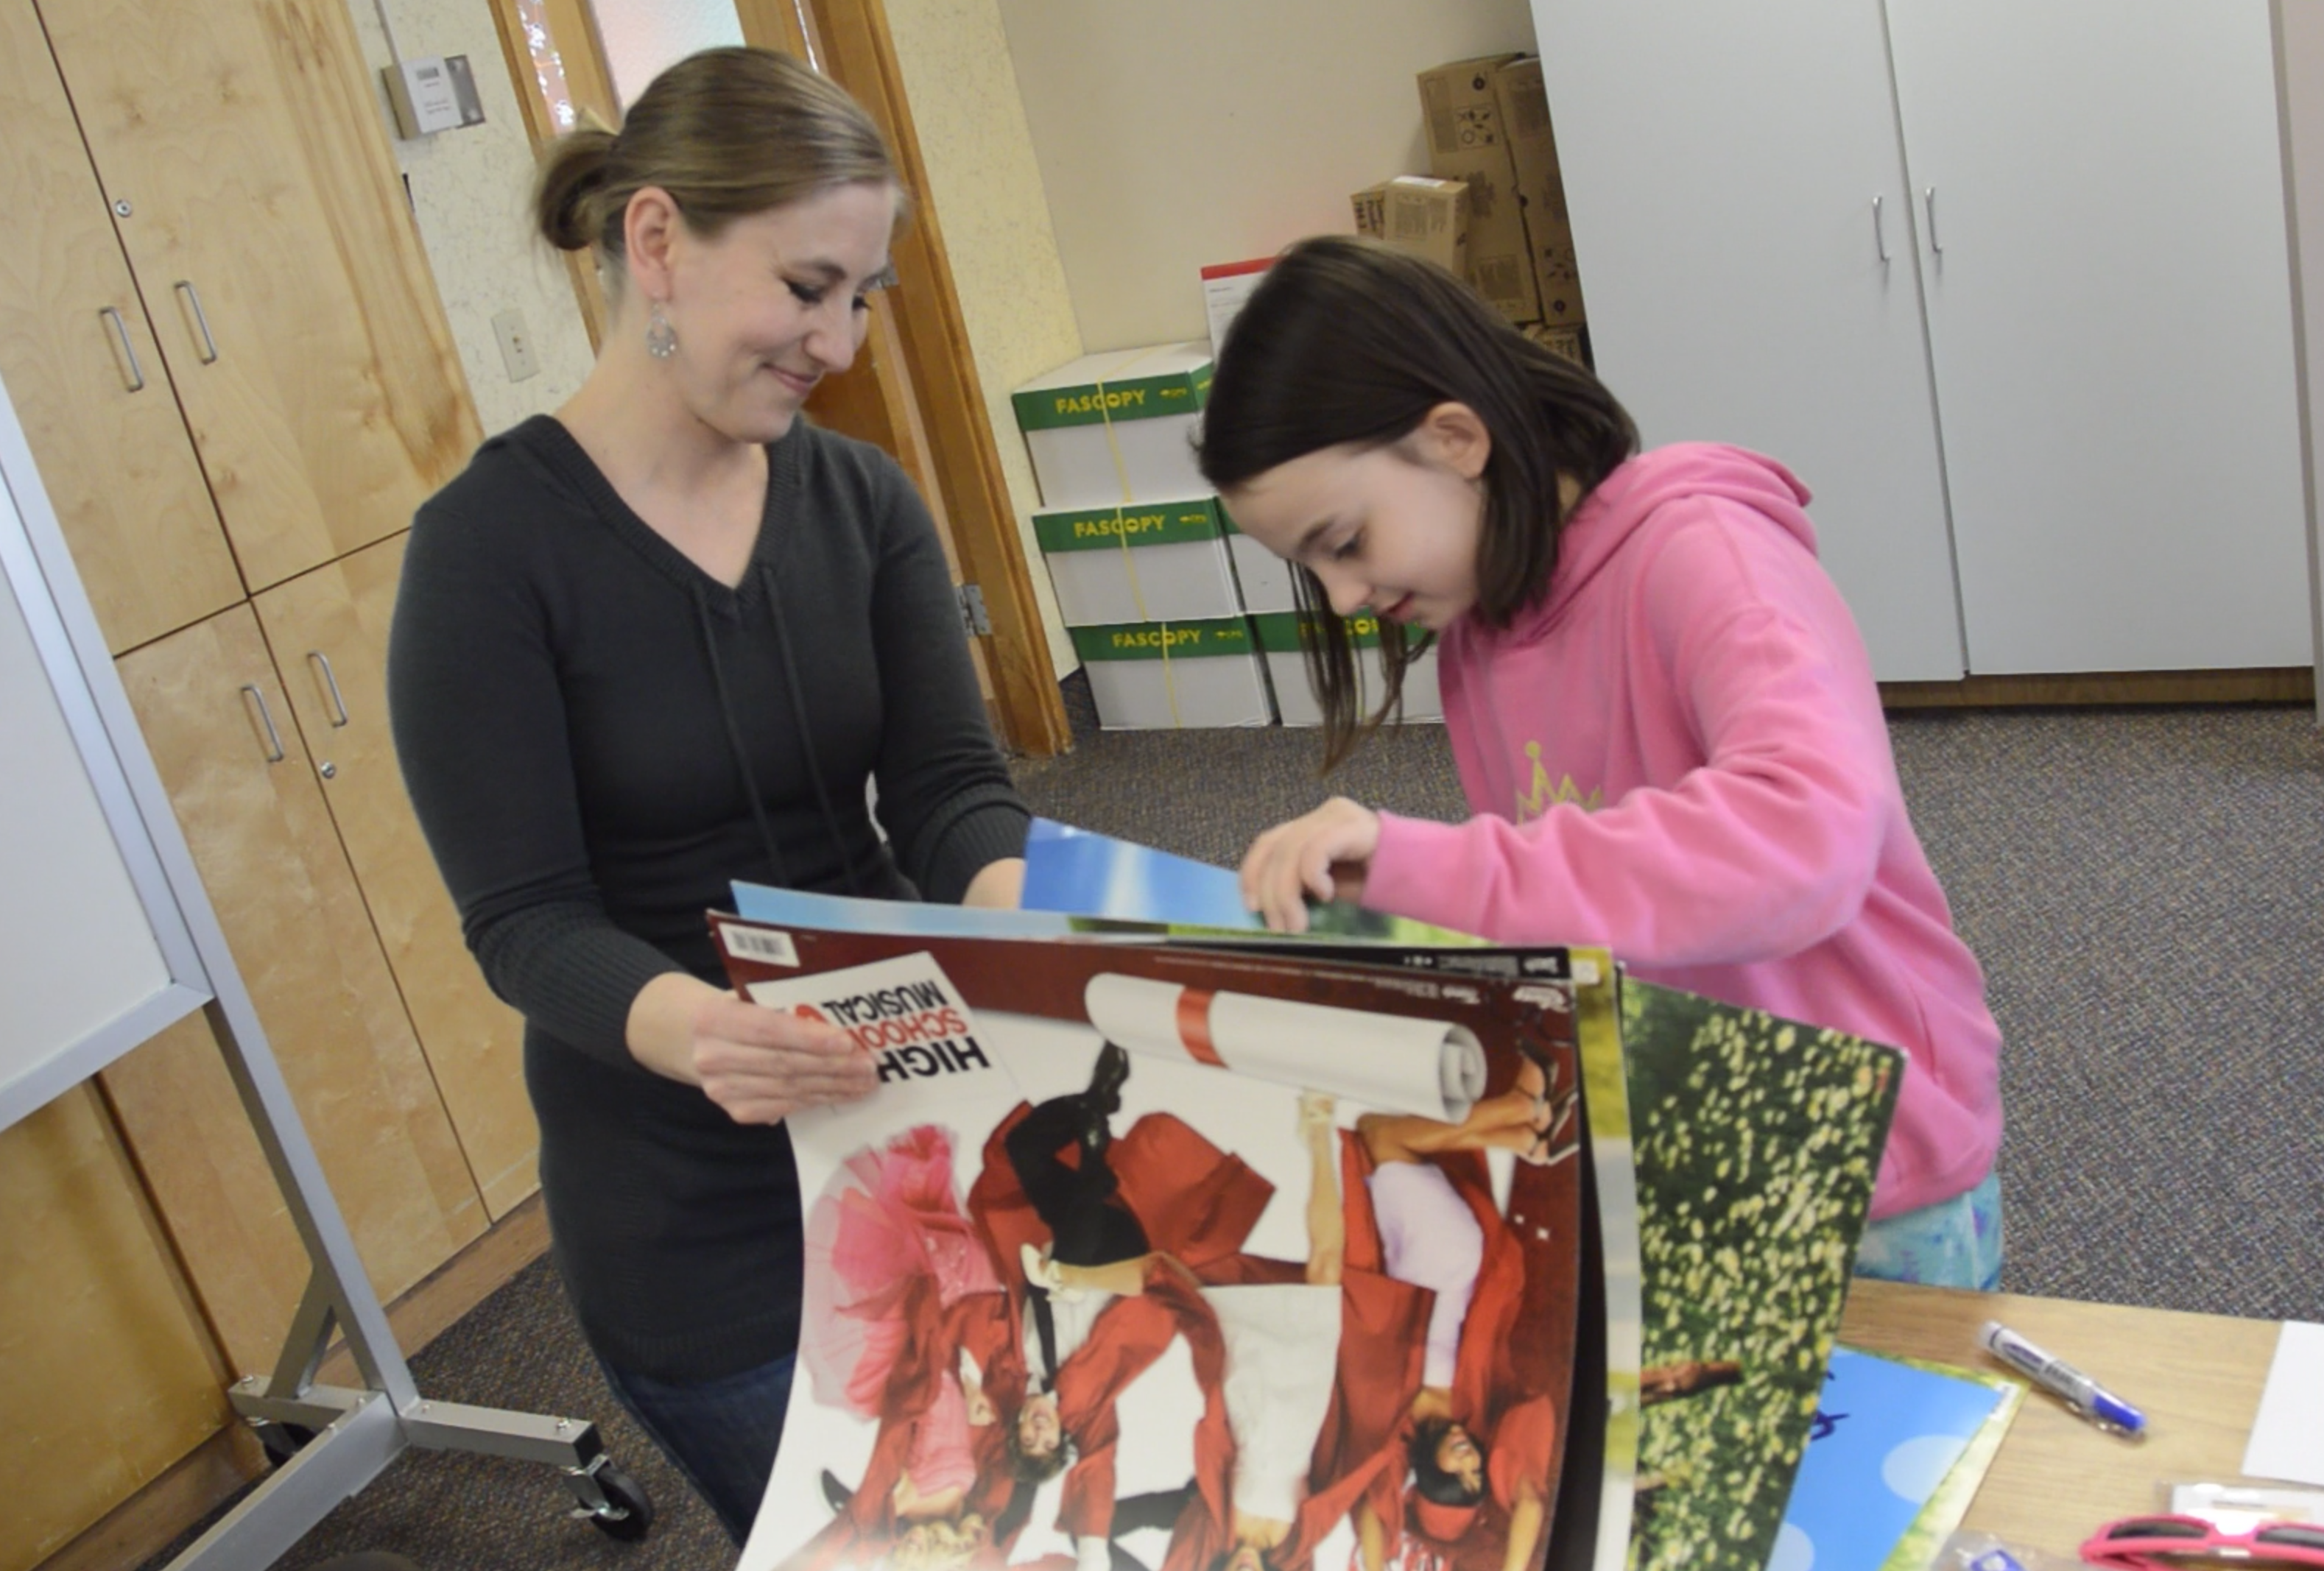 West Kearns volunteer and student look through posters